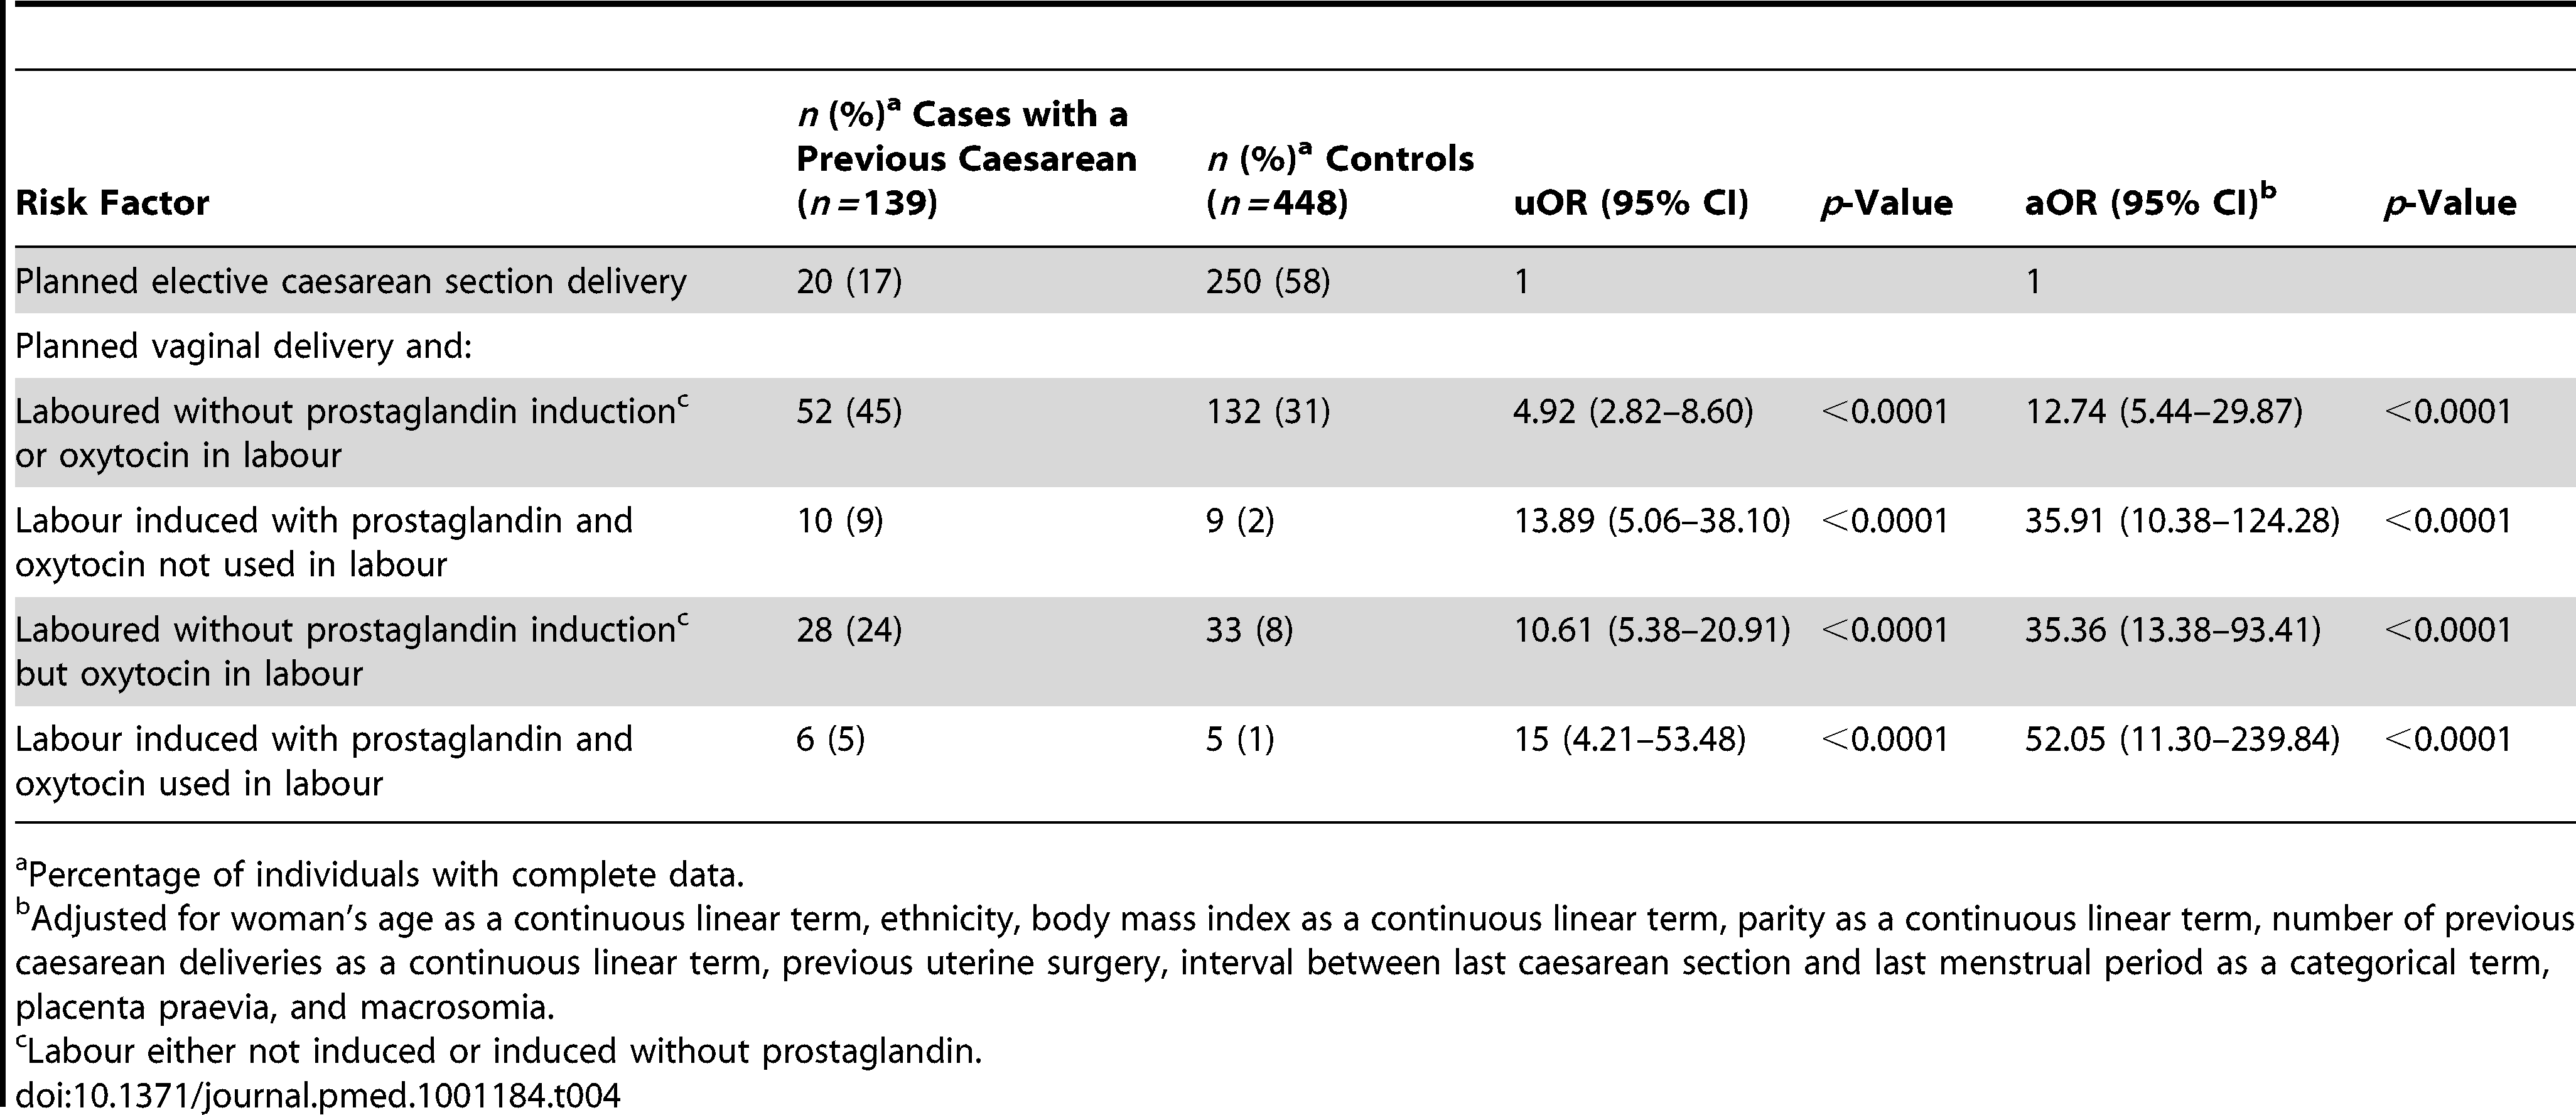 Risk factors for uterine rupture in women with prior delivery by caesarean section.